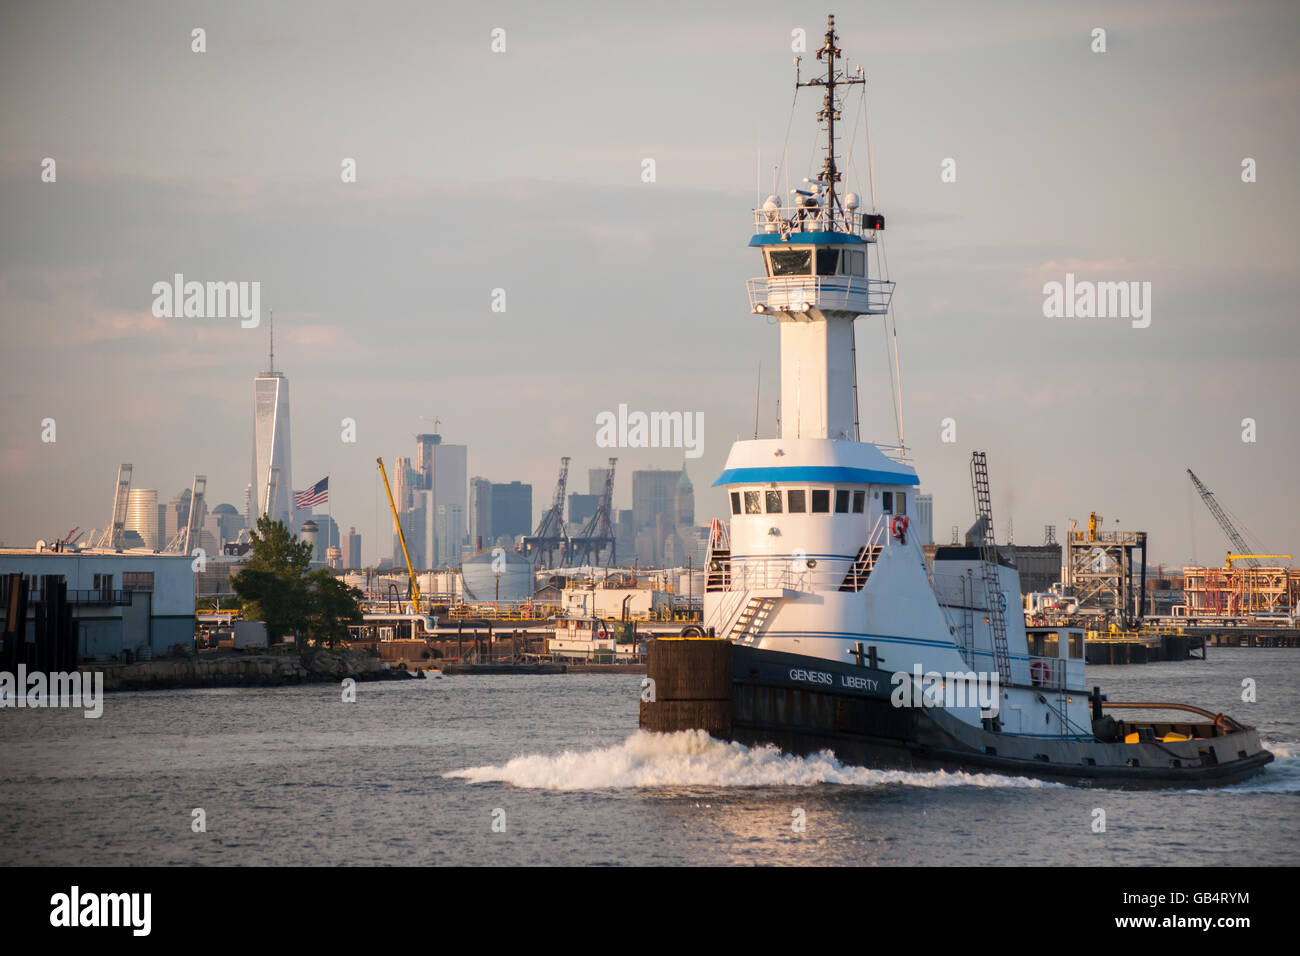 The Genesis Liberty tugboat, owned by the Genesis Marine